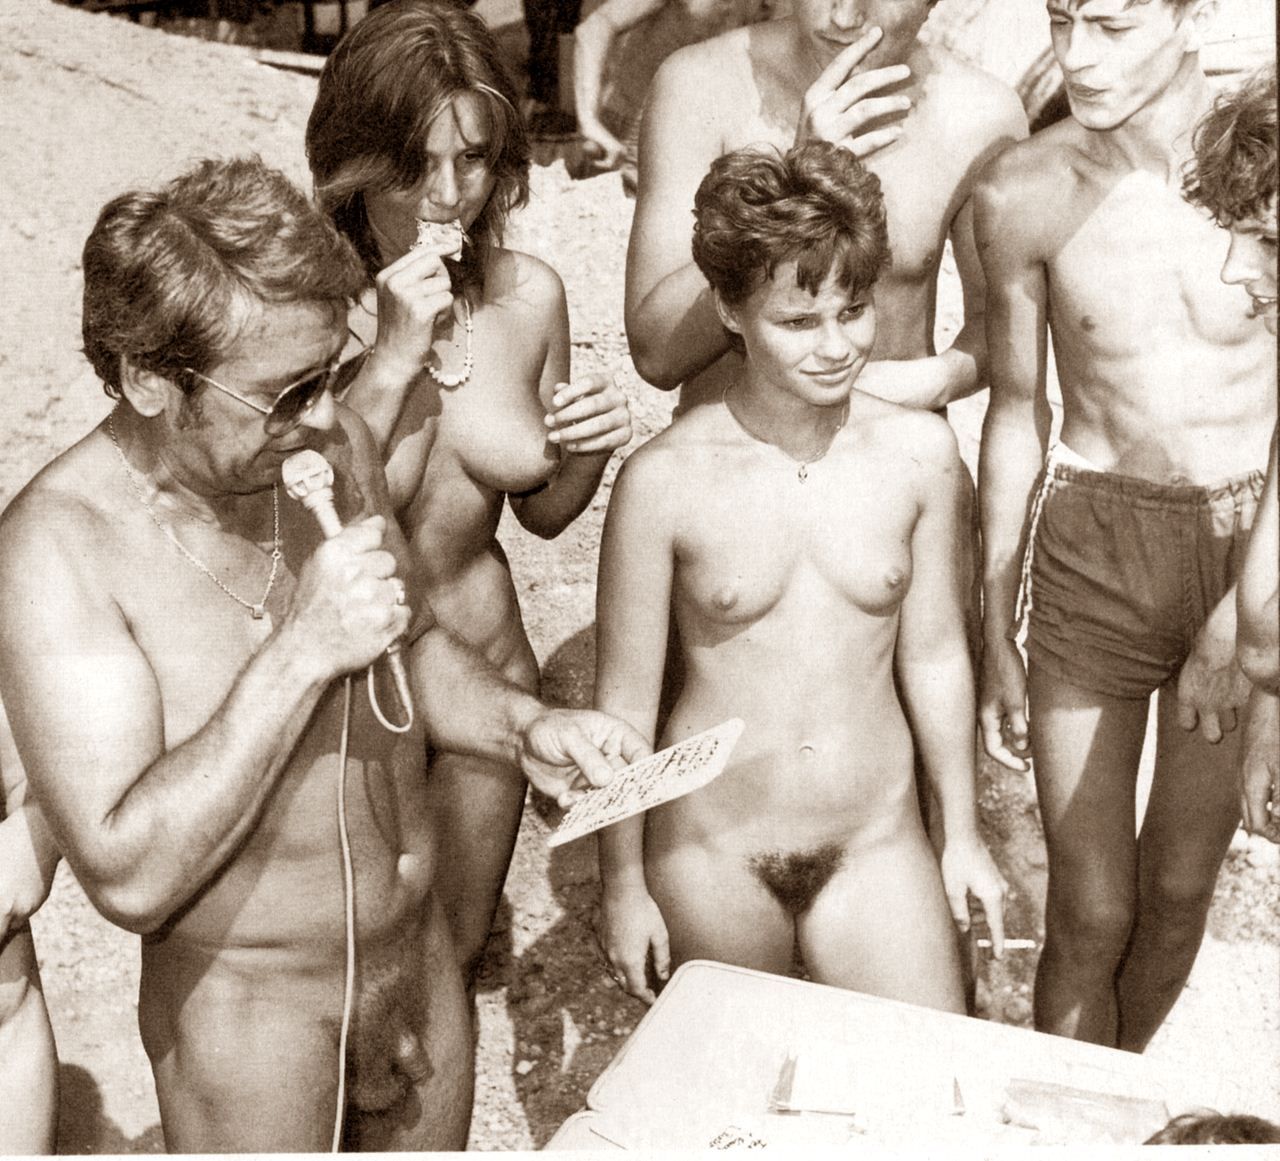 Milf 70s nudist gallery she